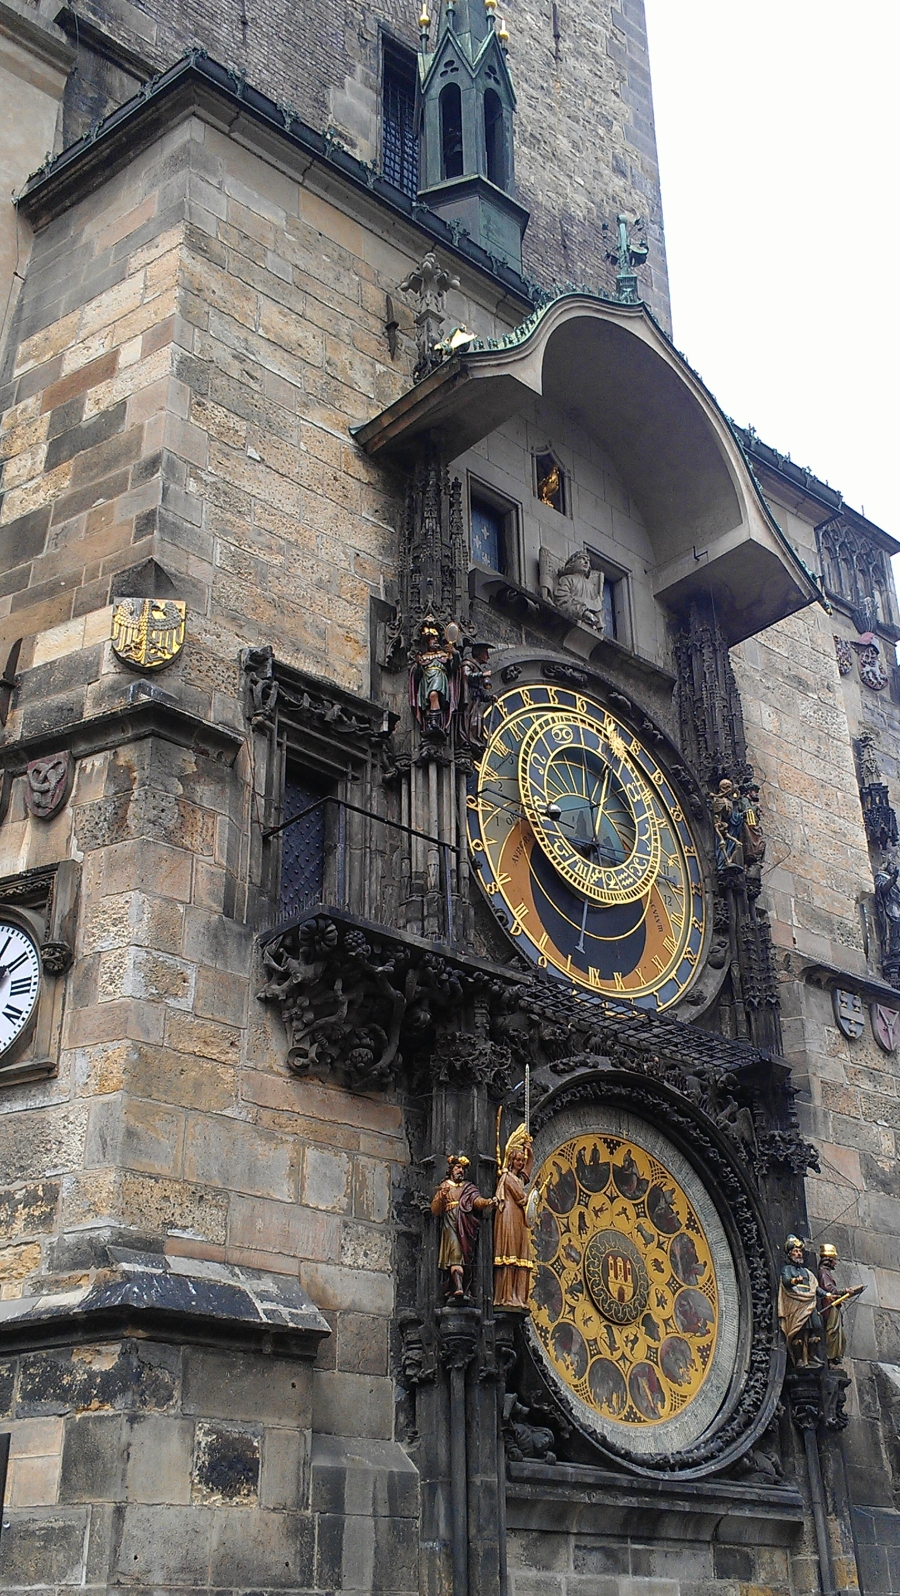 The Astronomical Clock on the Old Town Square, Prague, Czech Republic.